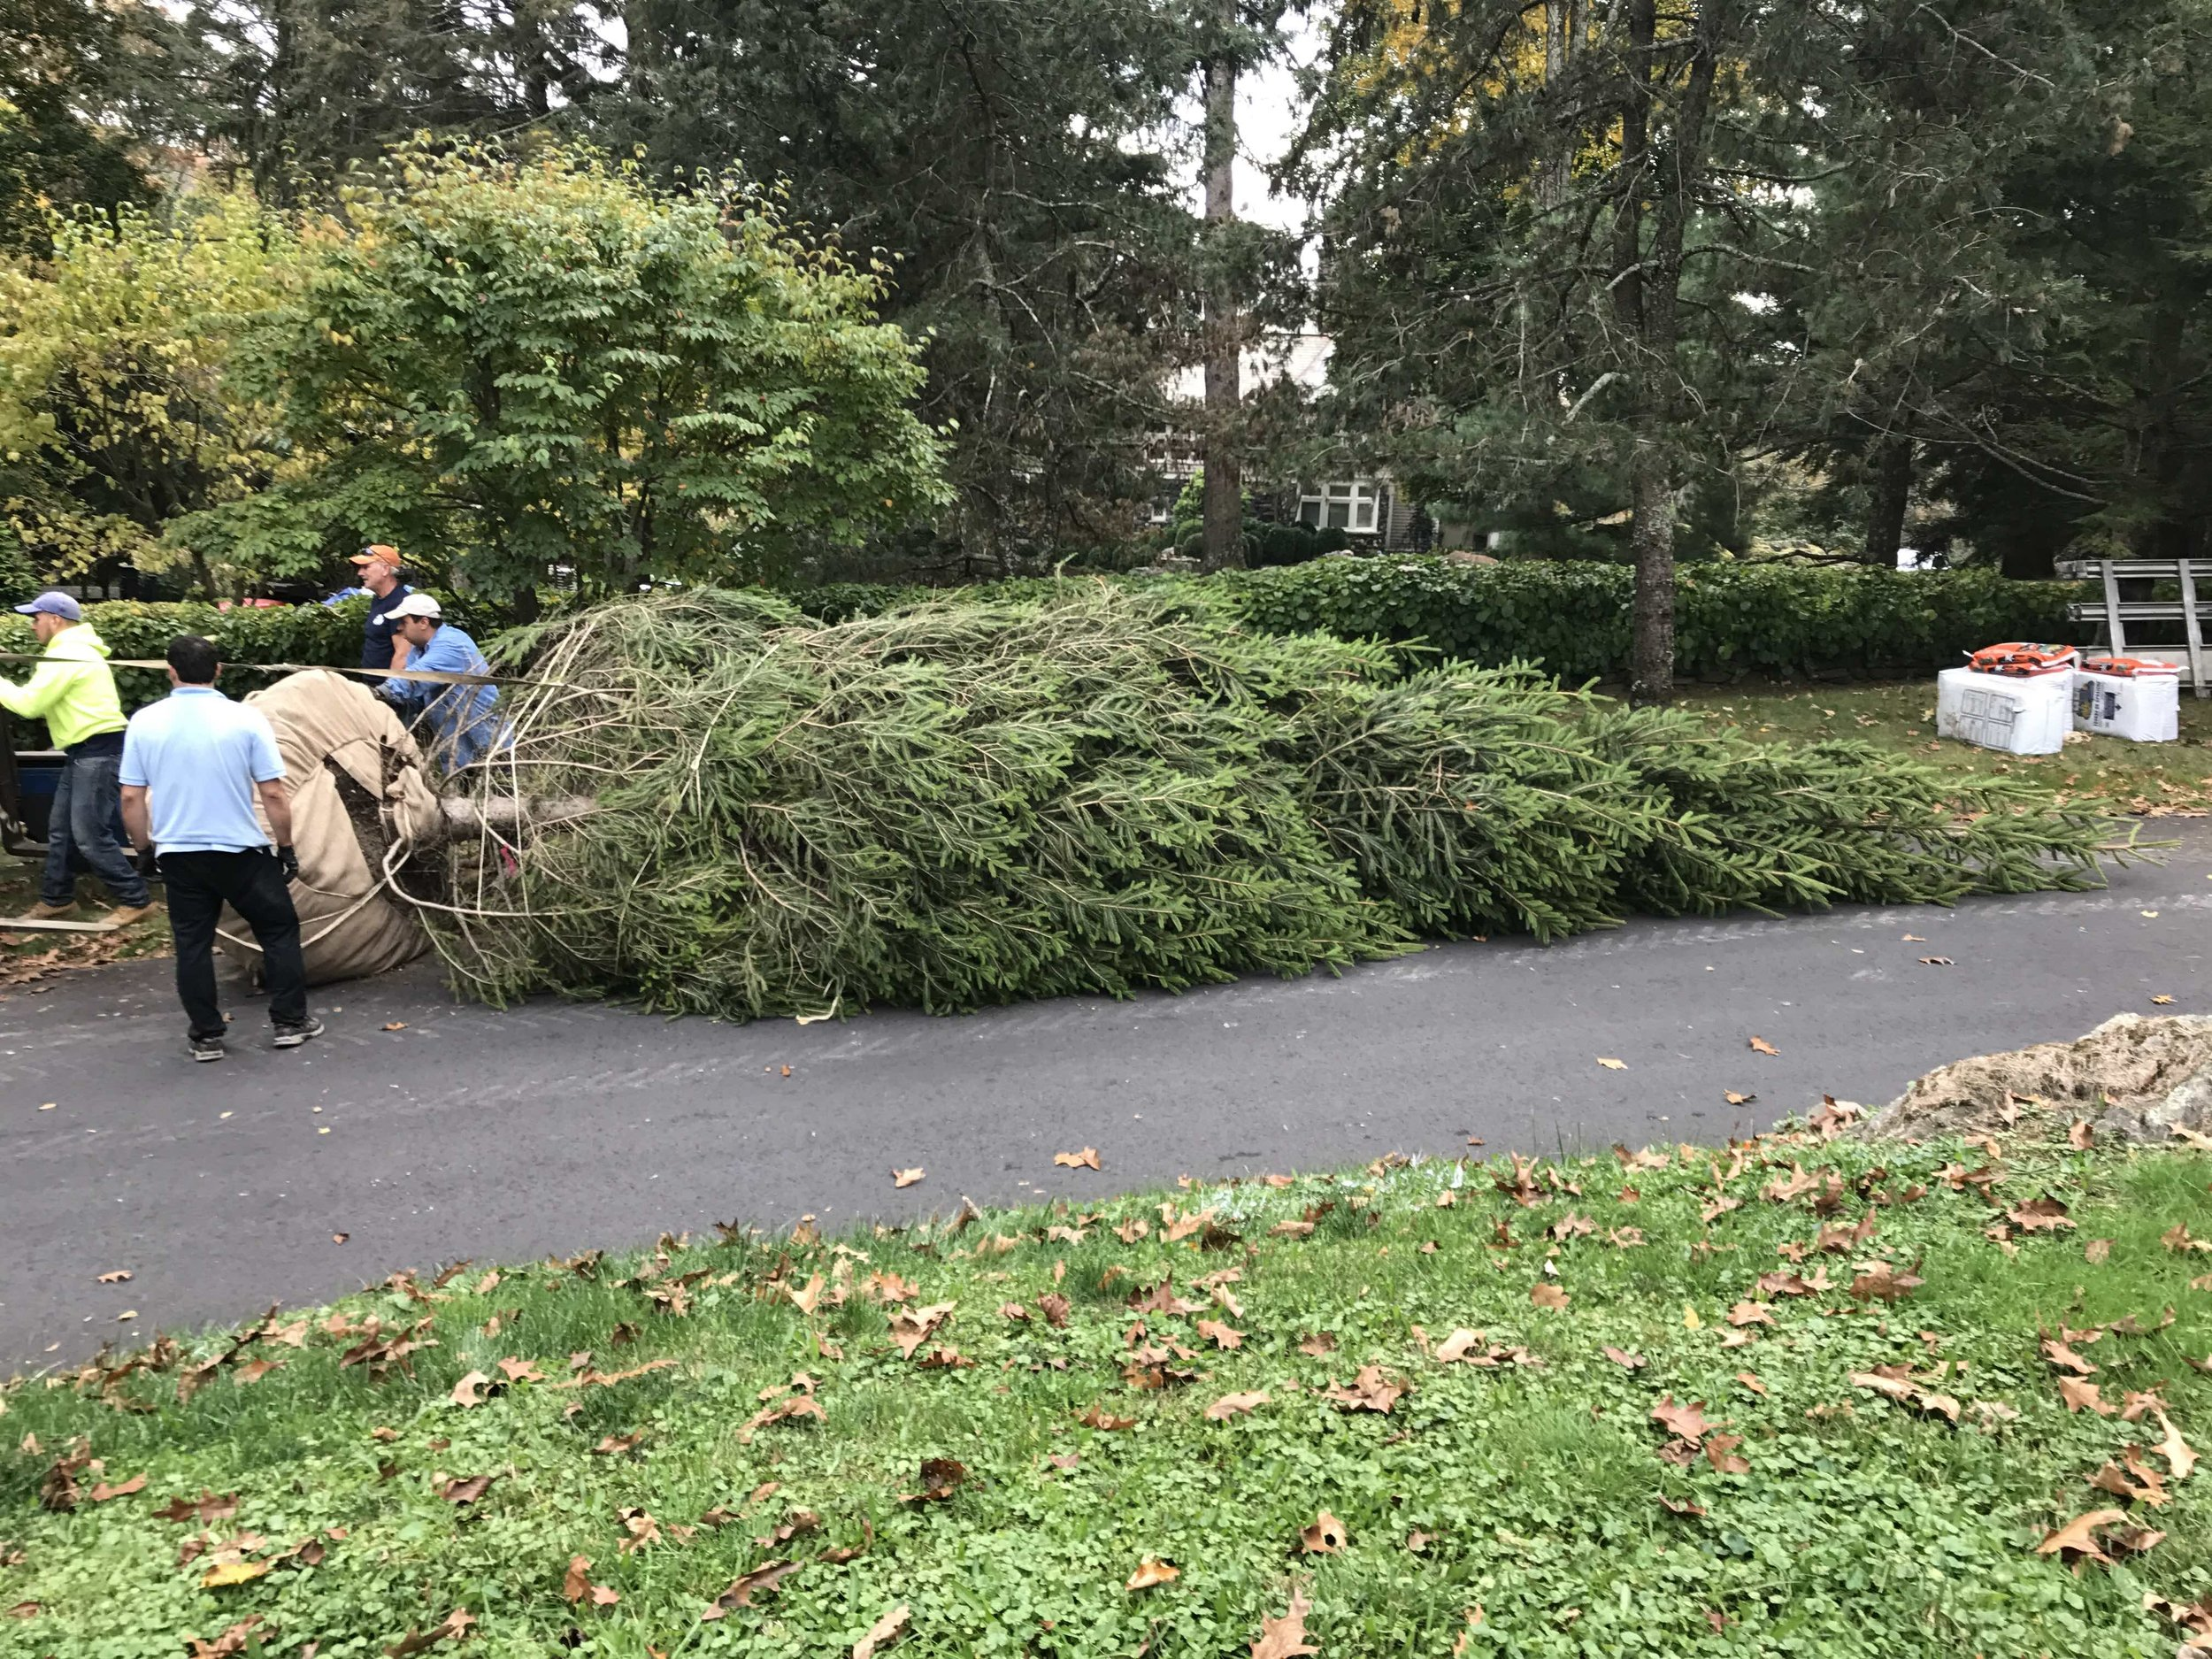 30ft. Norway Spruce